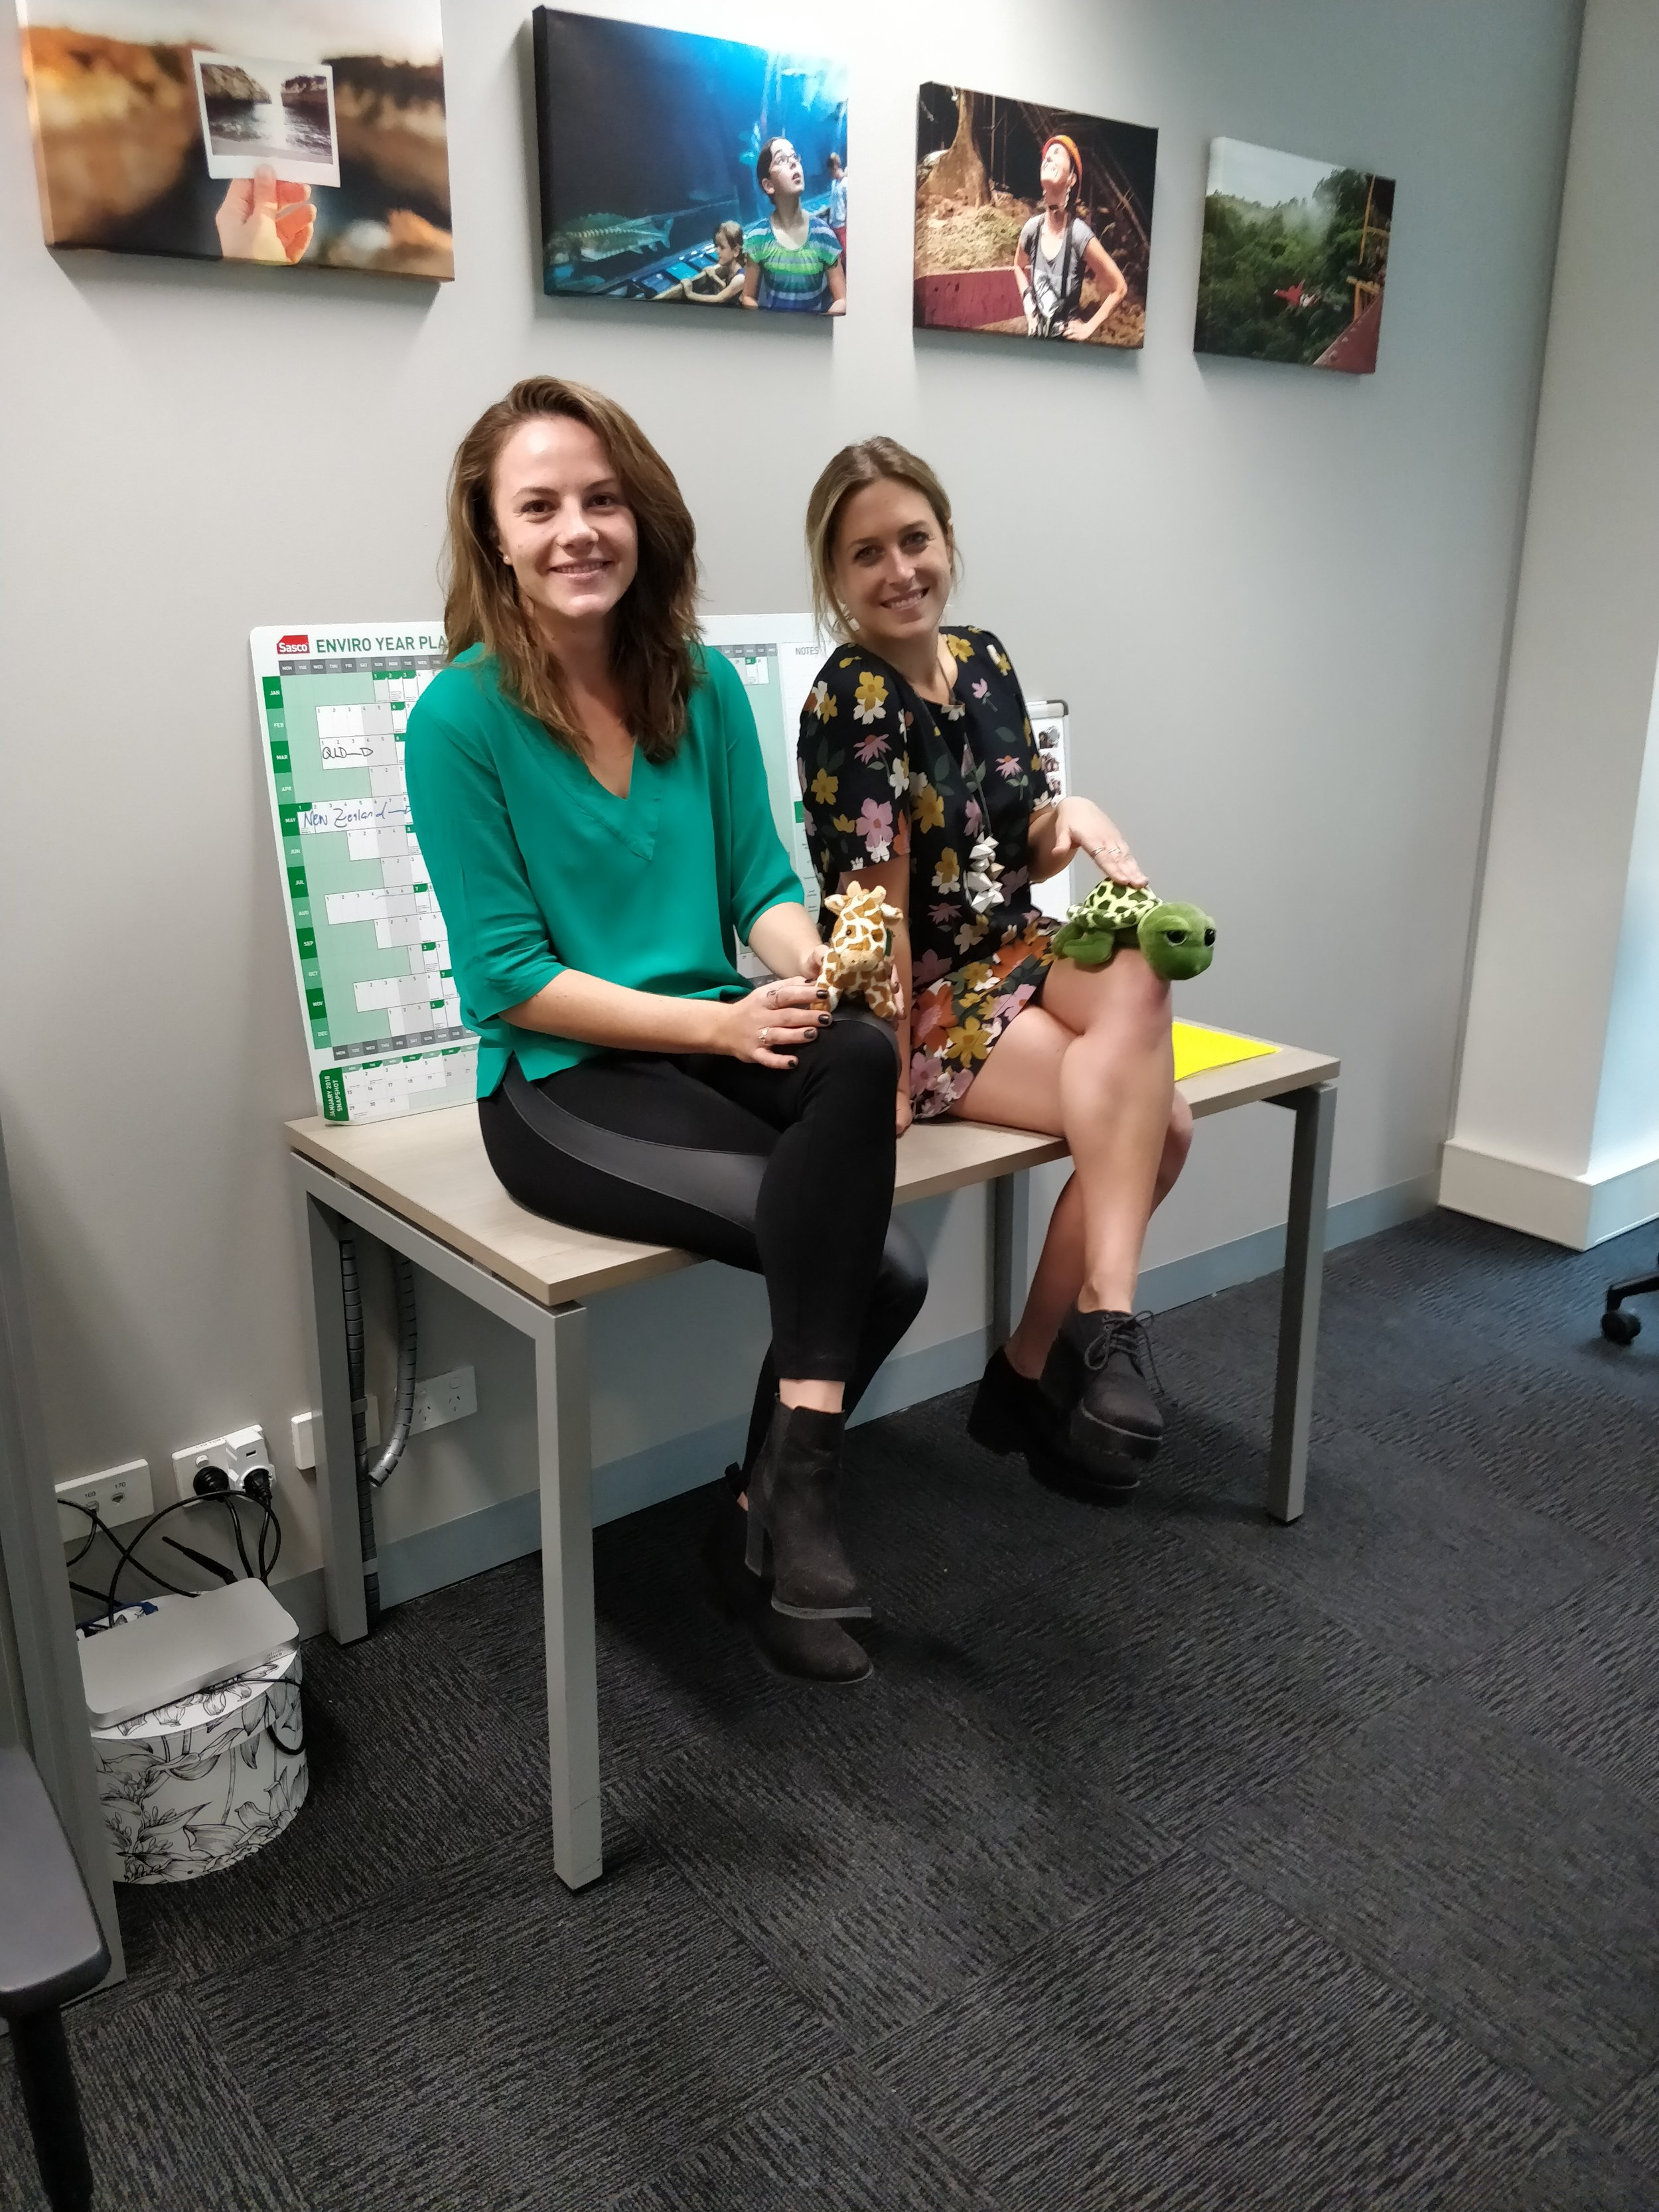 Tilly and Stephanie from our Sydney office. The Core Values proudly hung on the wall!